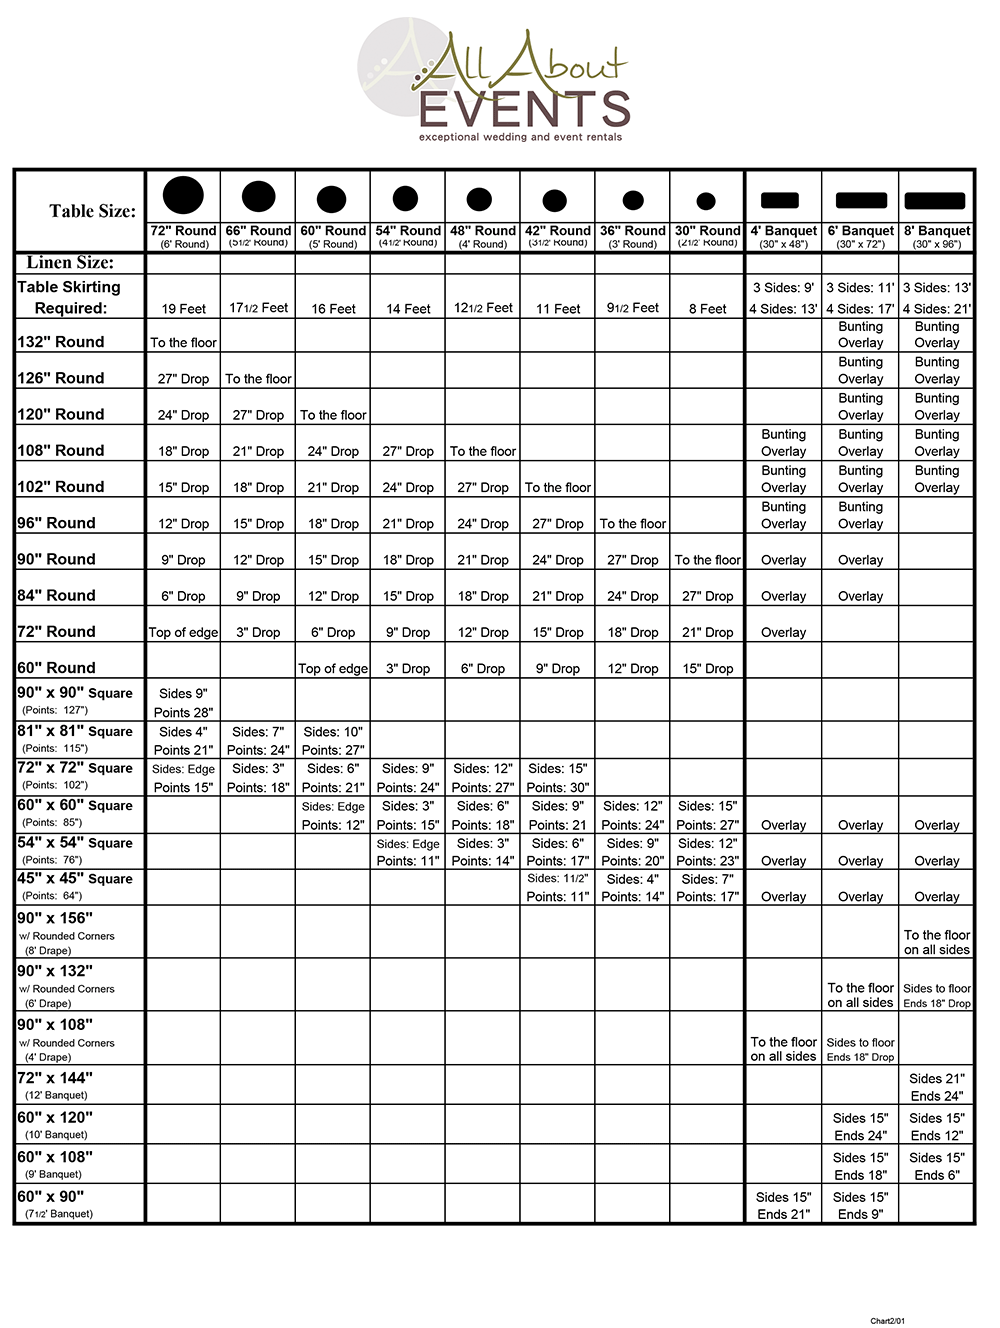 Linen Sizing Chart All About Events